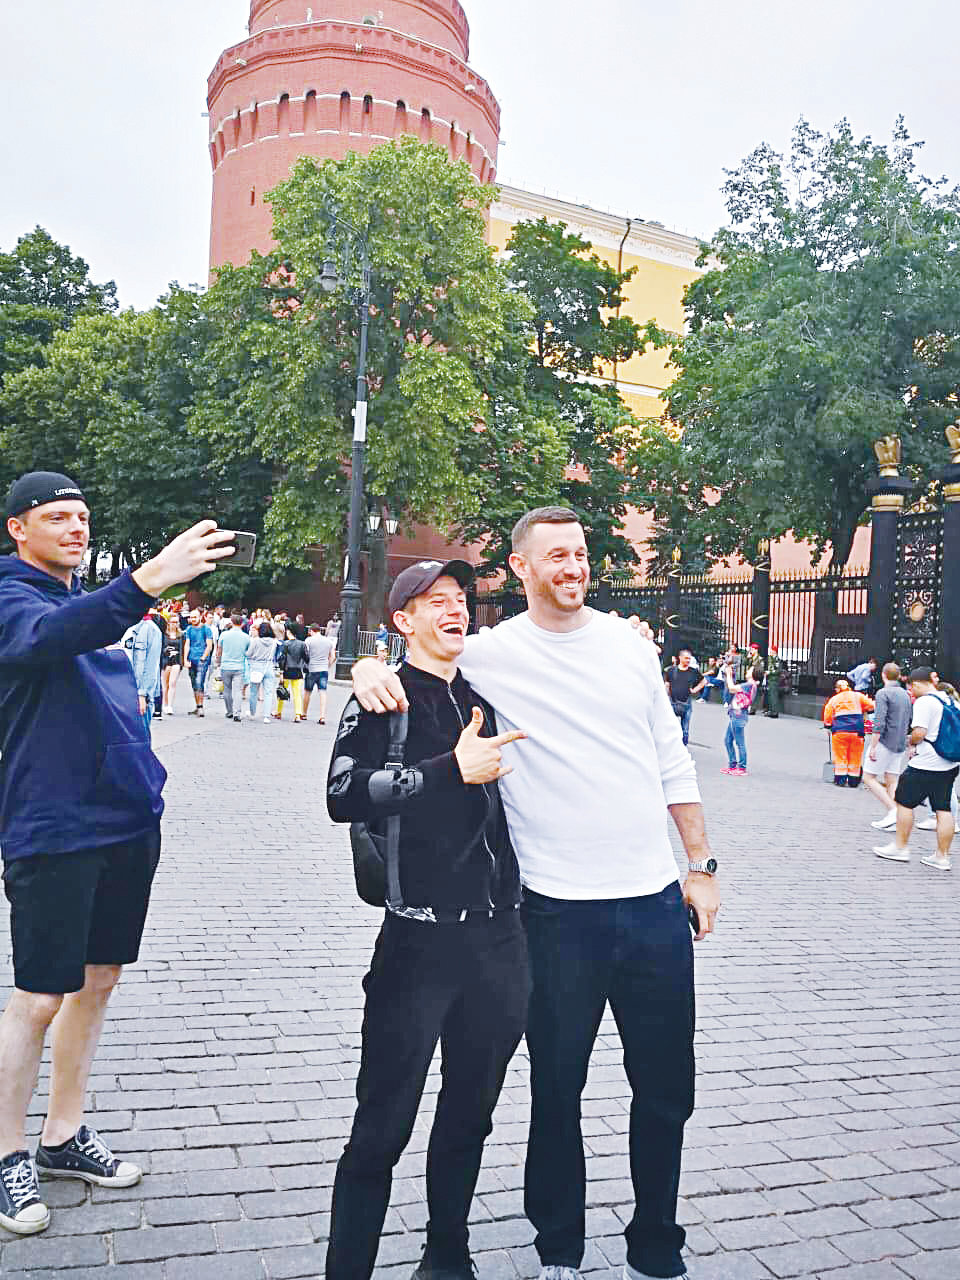 Enjoying the Port of Five Seas.Woods Fines (right) is all smiles with a teammate while enjoying some off time in the Red Square Disctrict of Moscow in Russia. Fines and his Kaunas County, Lituanaia teammates had some time to take in plenty of historical sites during the 2019 Federations Cup.